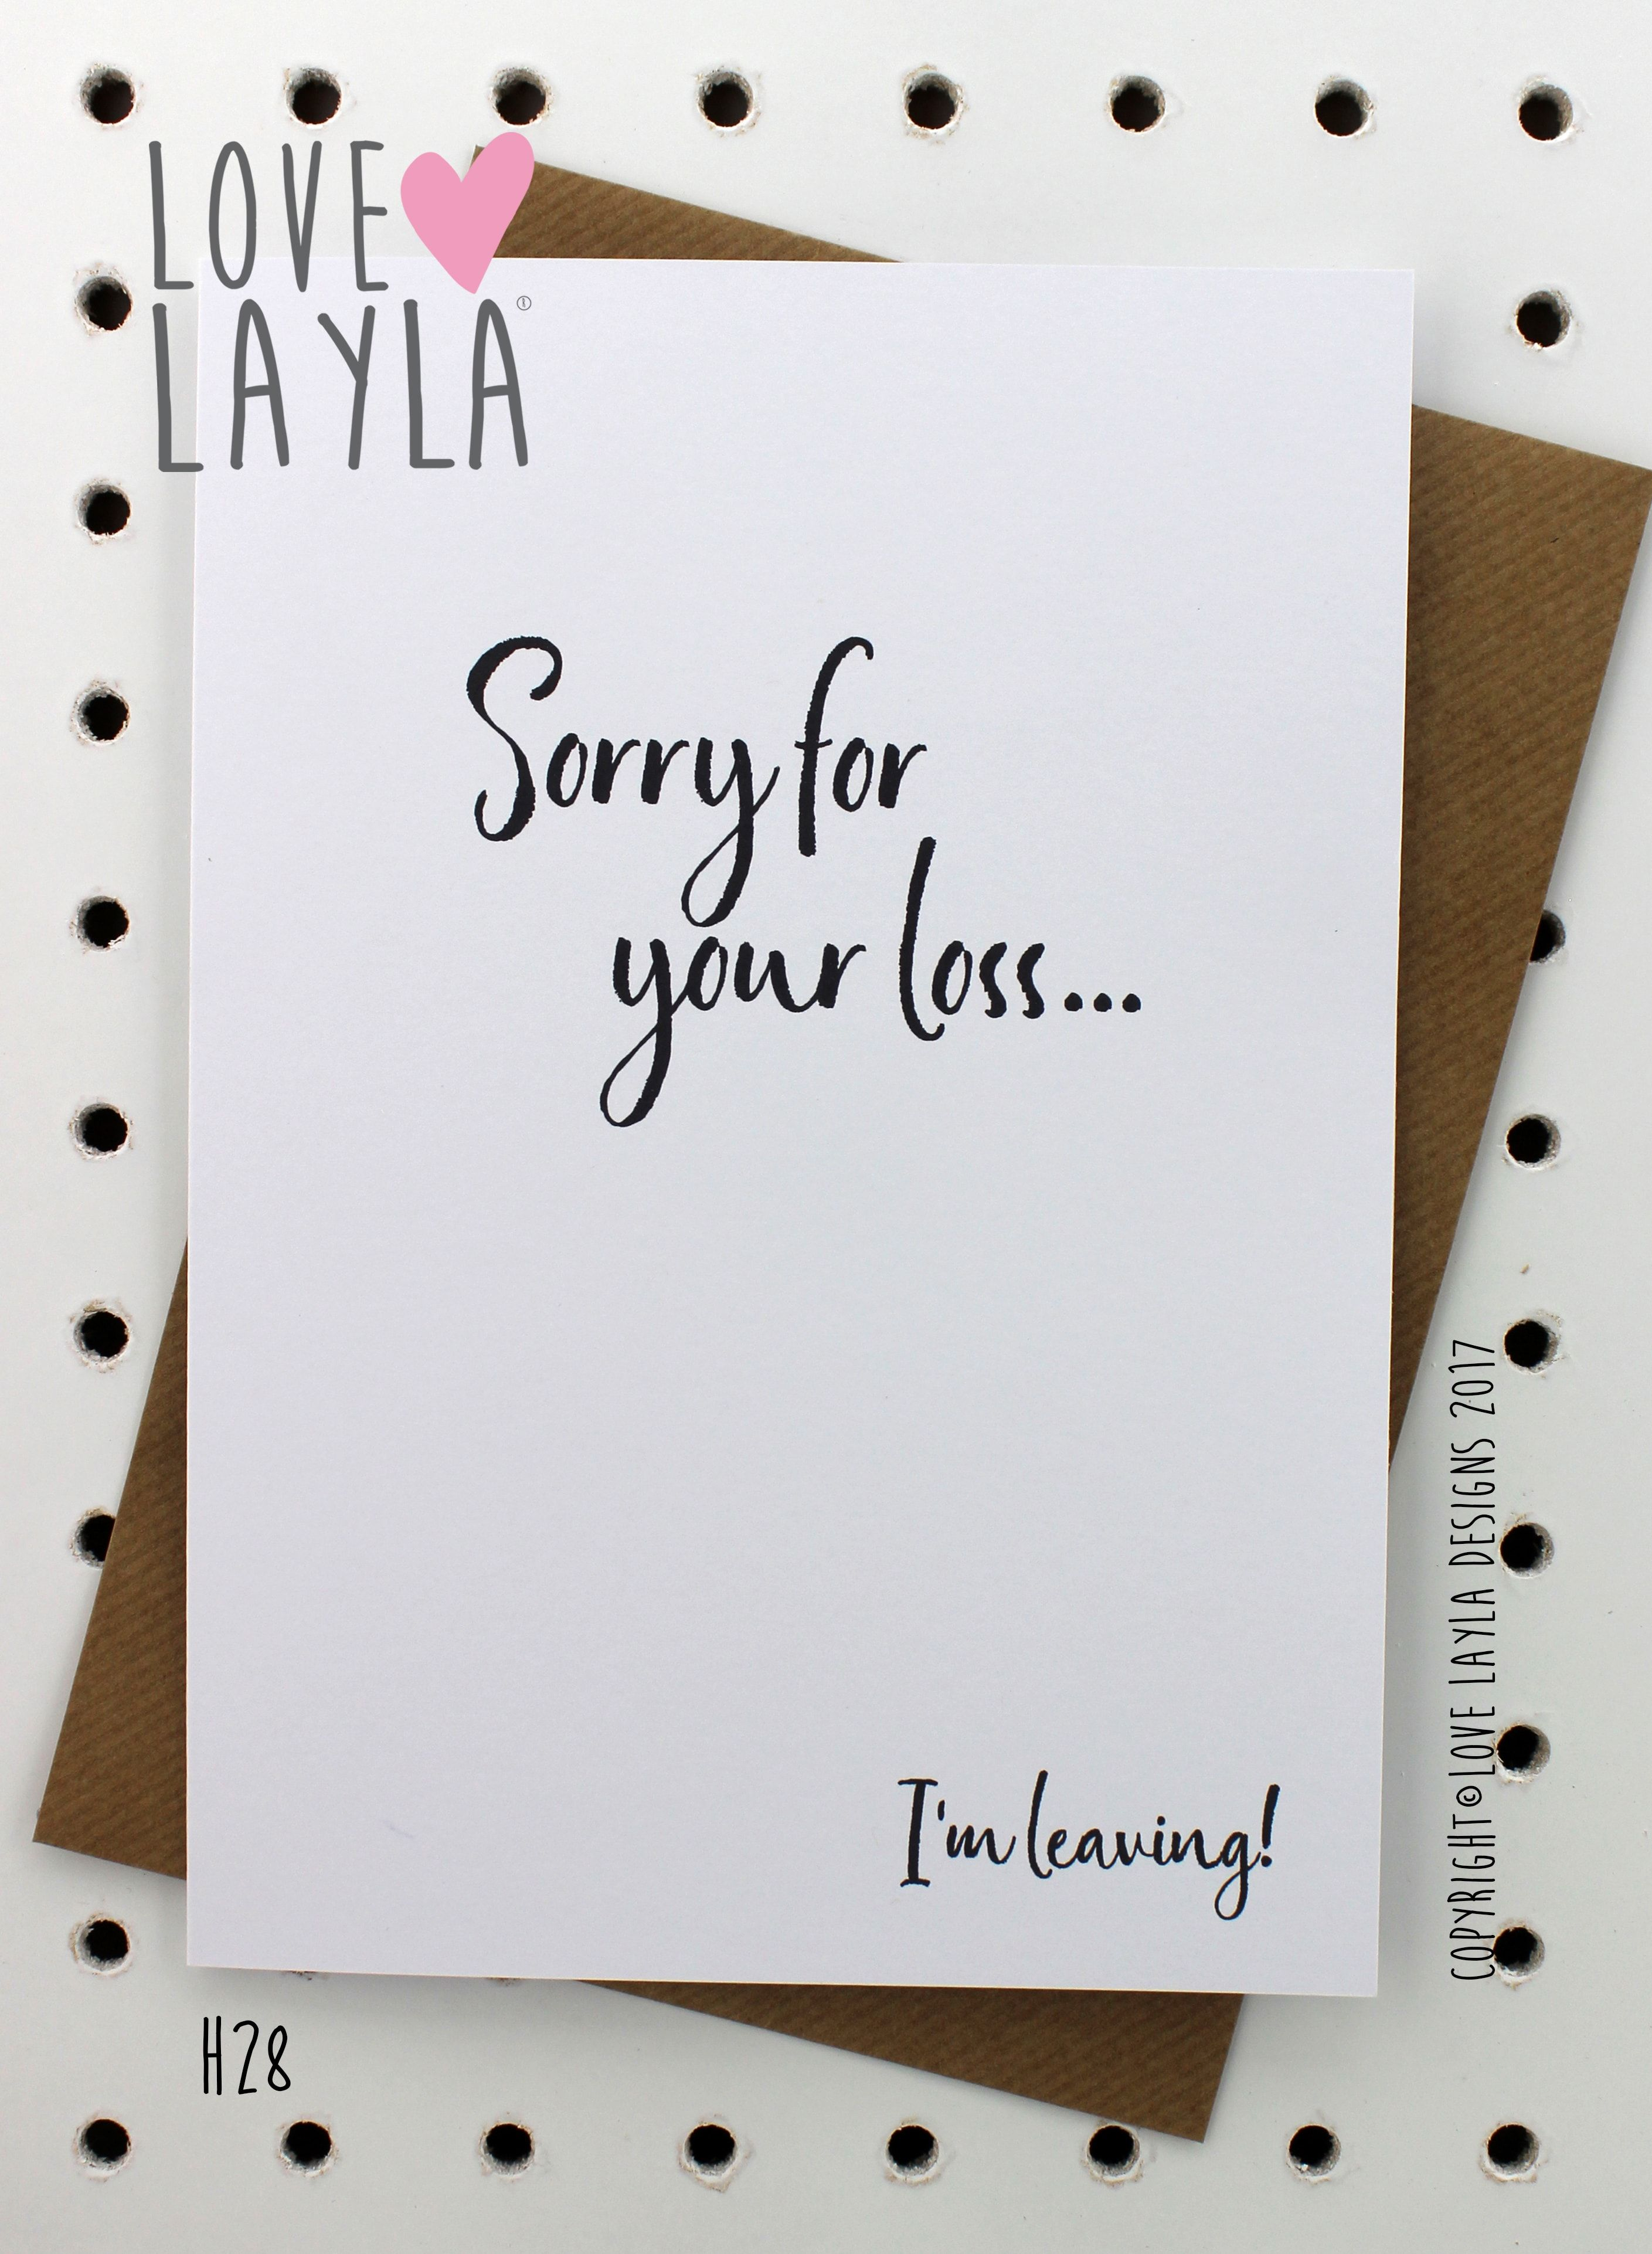 Bye bitches! #imleaving #seeya #notcomingback #bye #sorryforyourloss #newjob #retirement #farewell #lovelaylaaustralia #greetingcards #funnycards #funny #stayathomemum To buy this card, search H28 via our website